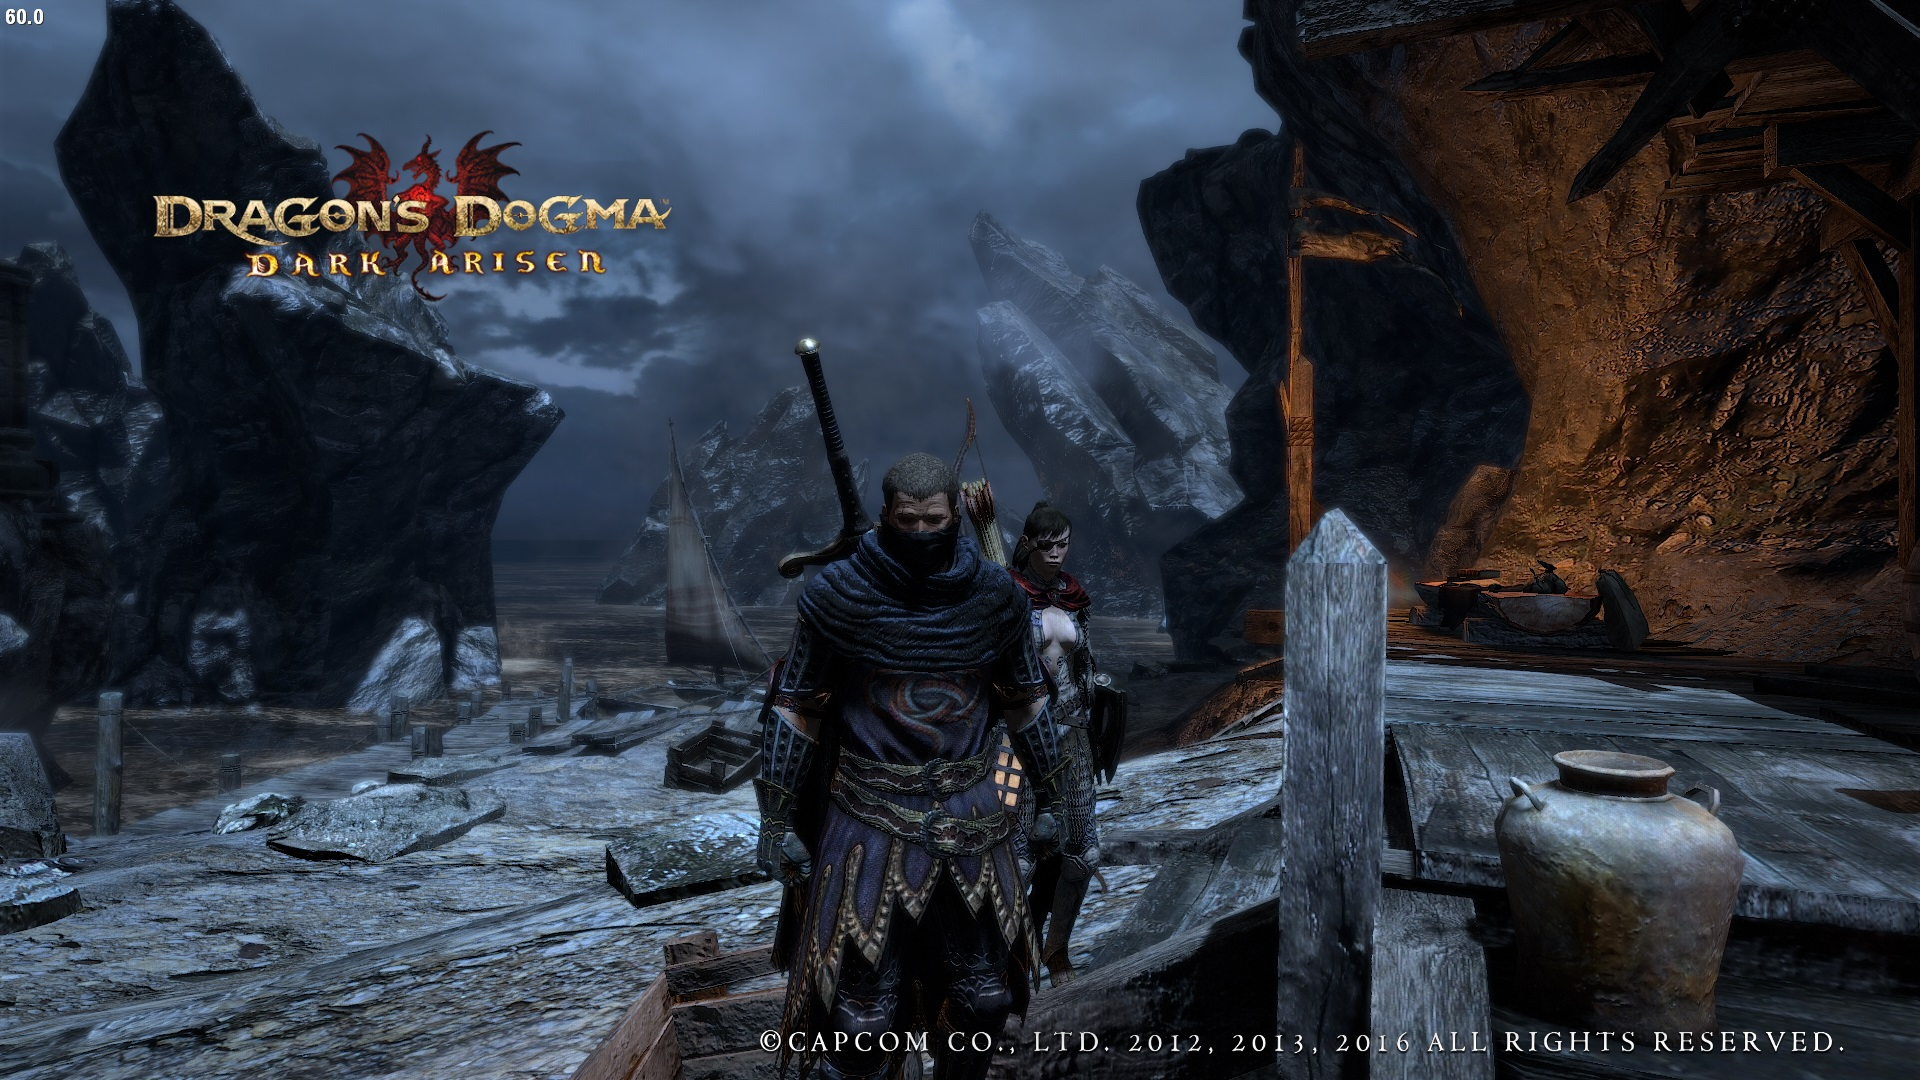 Berserk And Rogue At Dragons Dogma Dark Arisen Nexus Mods And Community Once you have completed the. dragons dogma dark arisen nexus mods